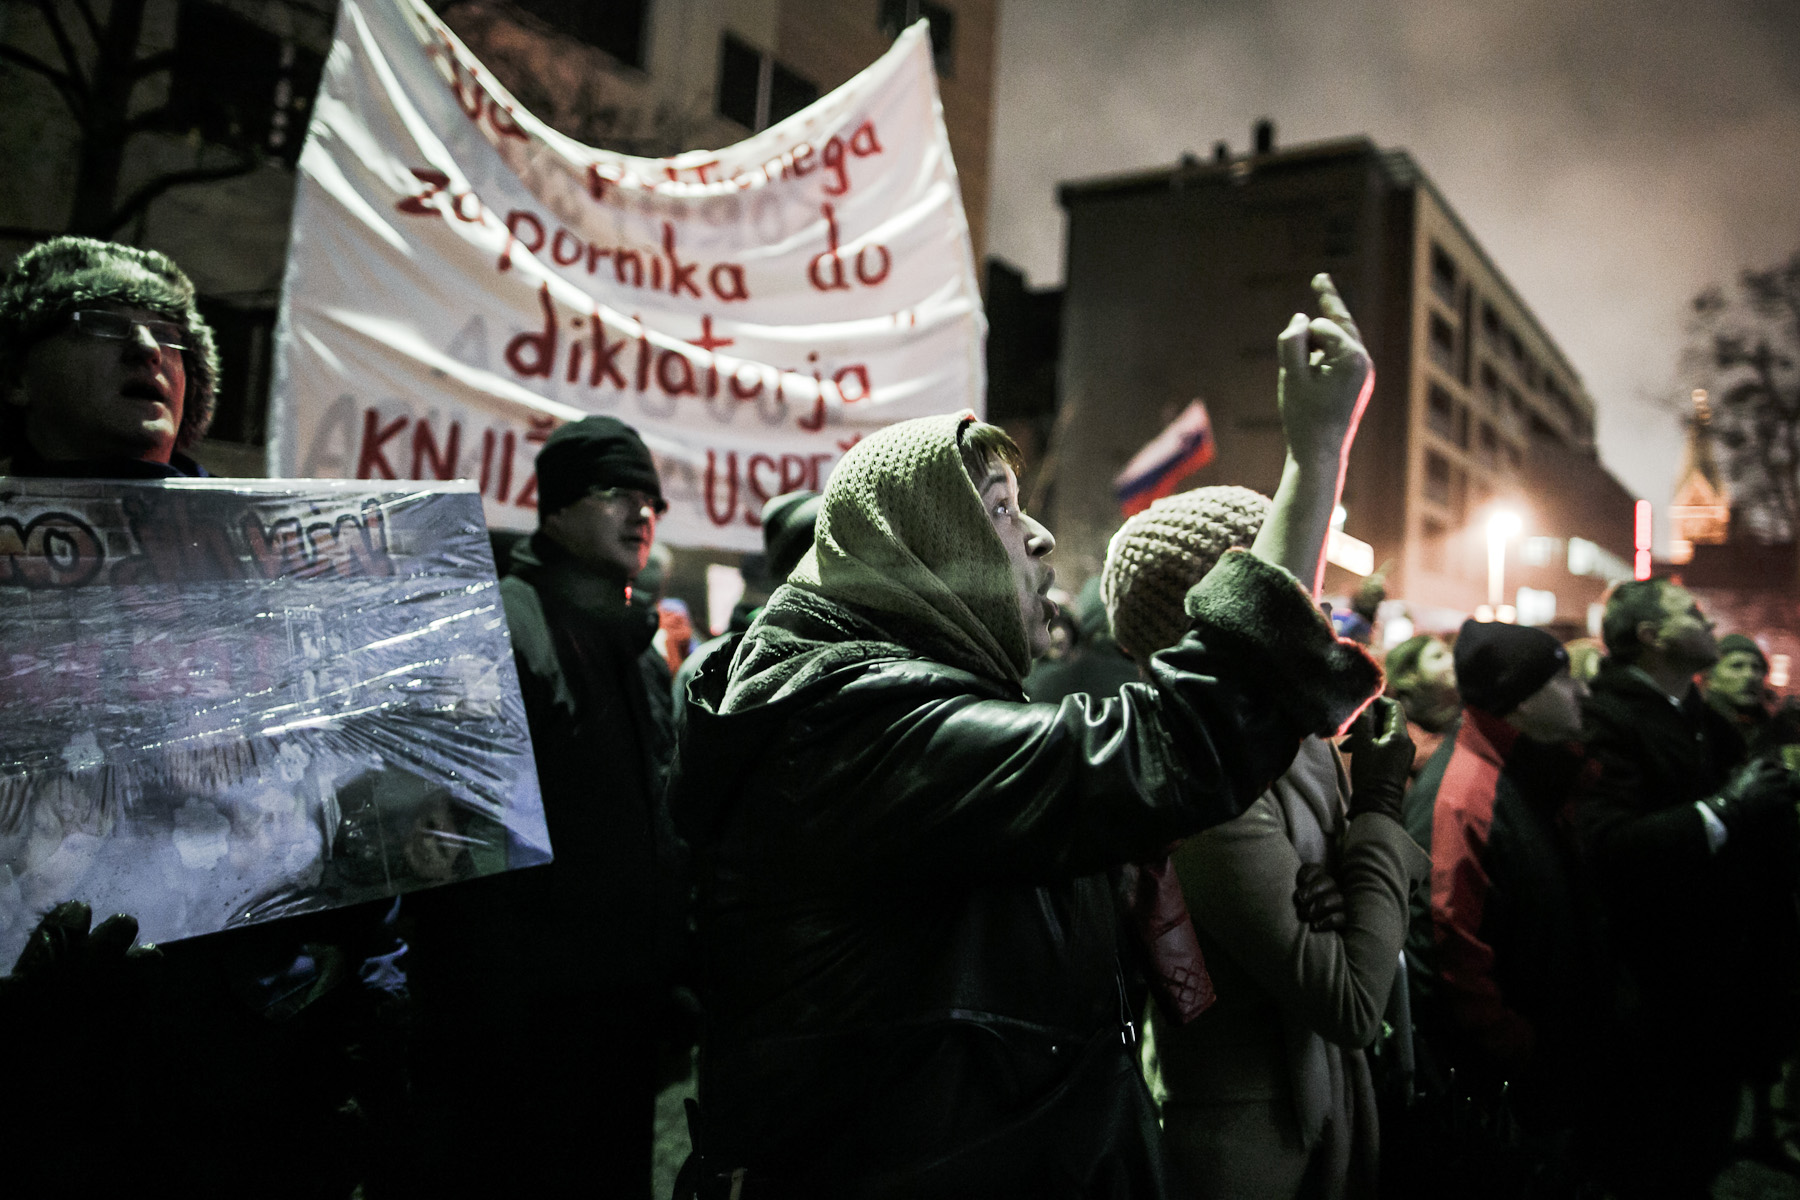 A protester gestures towards the municipality building during a protest against the local government and the city council in Maribor, Slovenia, on January 7, 2013.